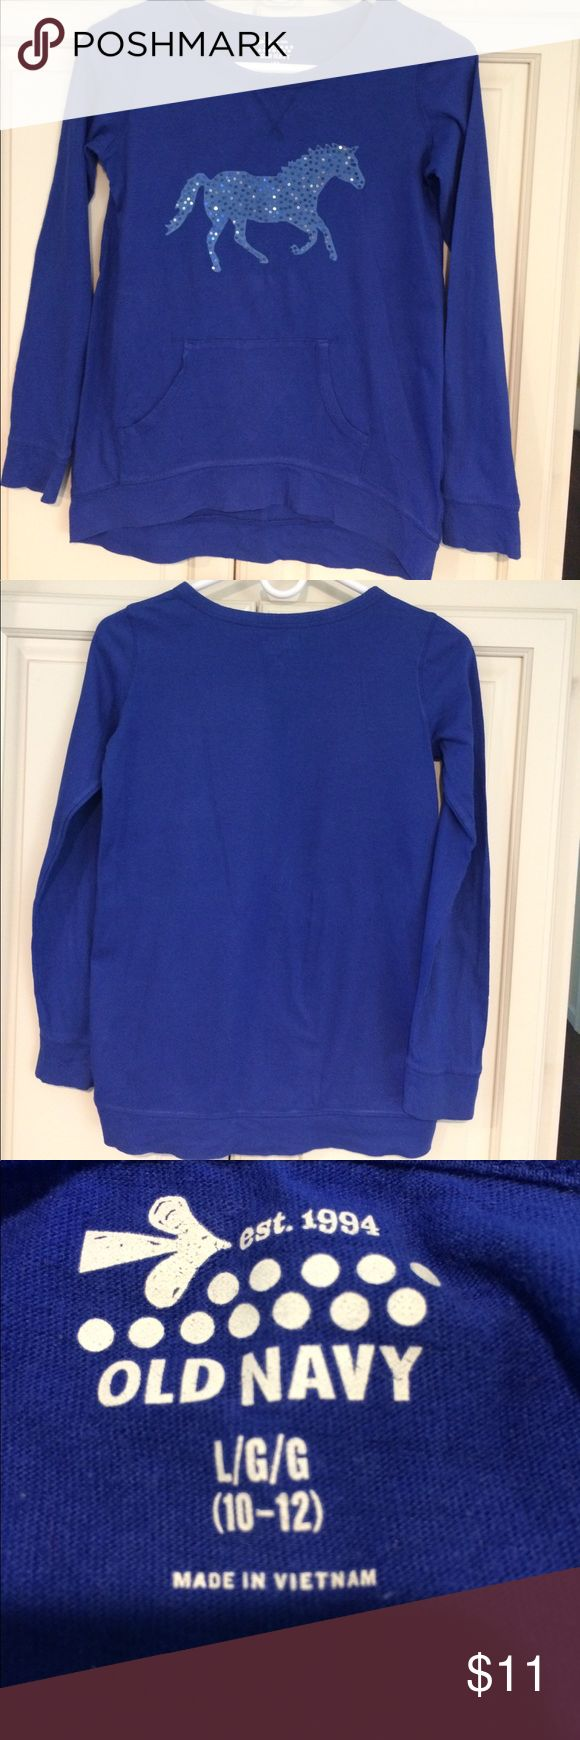 Girls Old Navy Long Sleeve Top L(10-12) Horse Girls Old Navy Long Sleeve Top L(10-12) Blue with Horse sequin Design on front Old Navy Shirts & Tops Tees - Long Sleeve